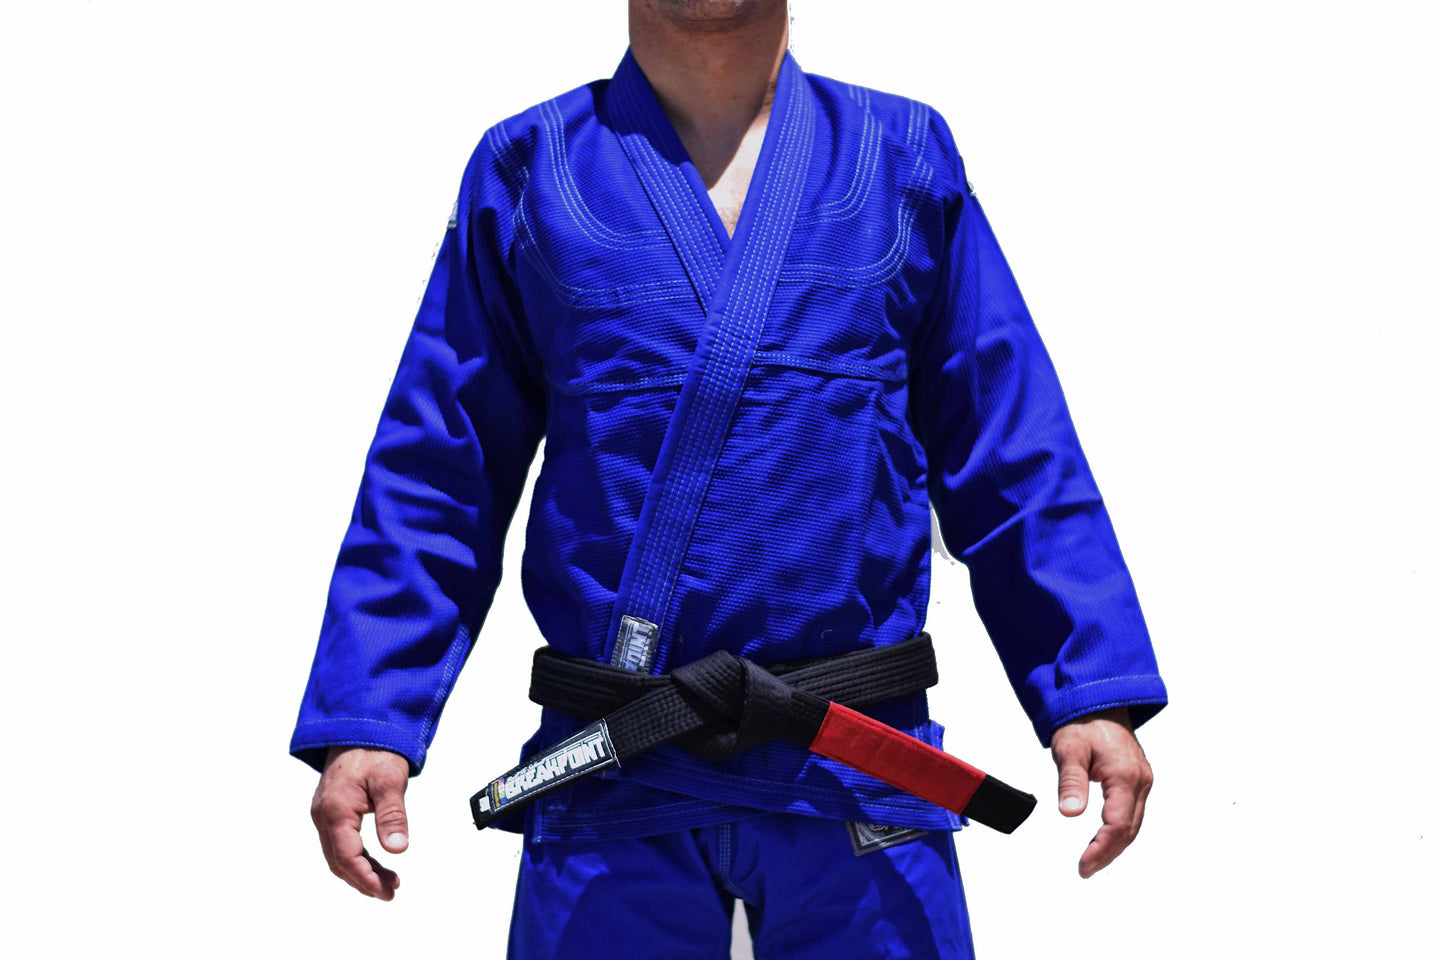 Break Point - Classic Blue Jiu Jitsu Gi - Jitsu Armor